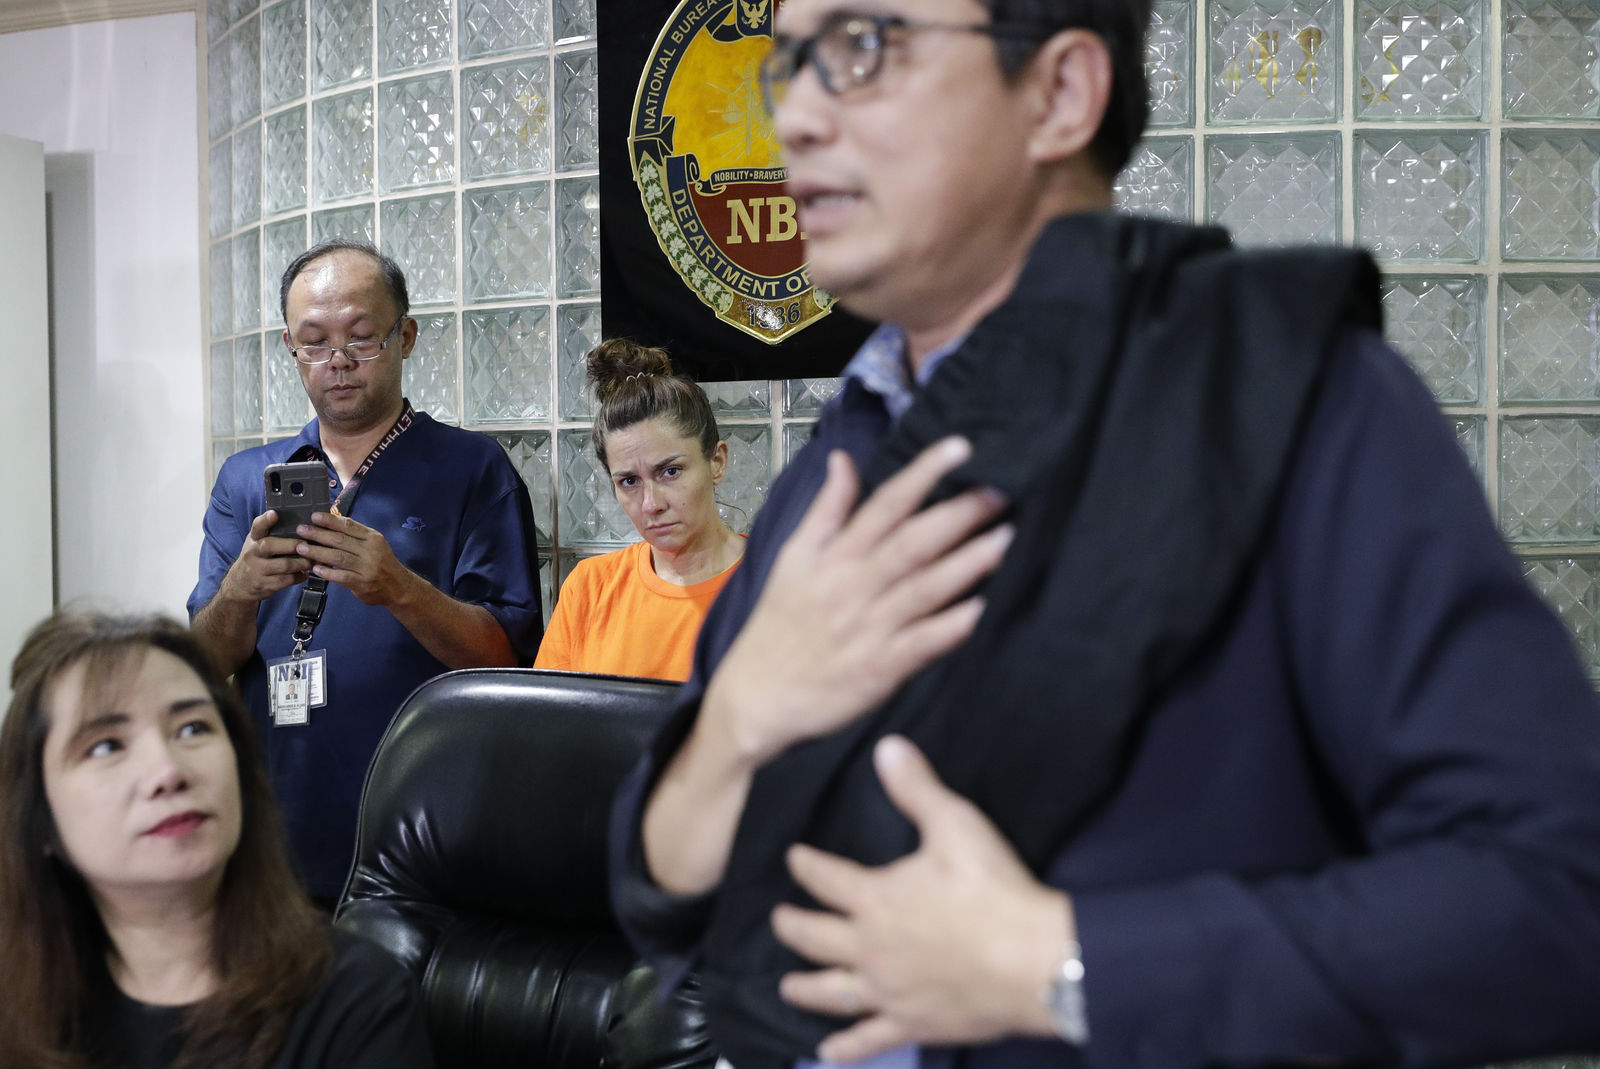 American Jennifer Erin Talbot, center rear, from Ohio looks as National Bureau of Investigation - International Airport Investigation Division chief Atty. Manny Dimaano shows a bag which Talbot allegedly used to carry a baby during a press conference in Manila, Philippines on Thursday, Sept. 5, 2019. The NBI said the 43-year-old Talbot was arrested at the Ninoy Aquino International Airport yesterday for trying to bring out of the country a 6-day old Filipino baby without proper travel documents. (AP Photo/Aaron Favila)